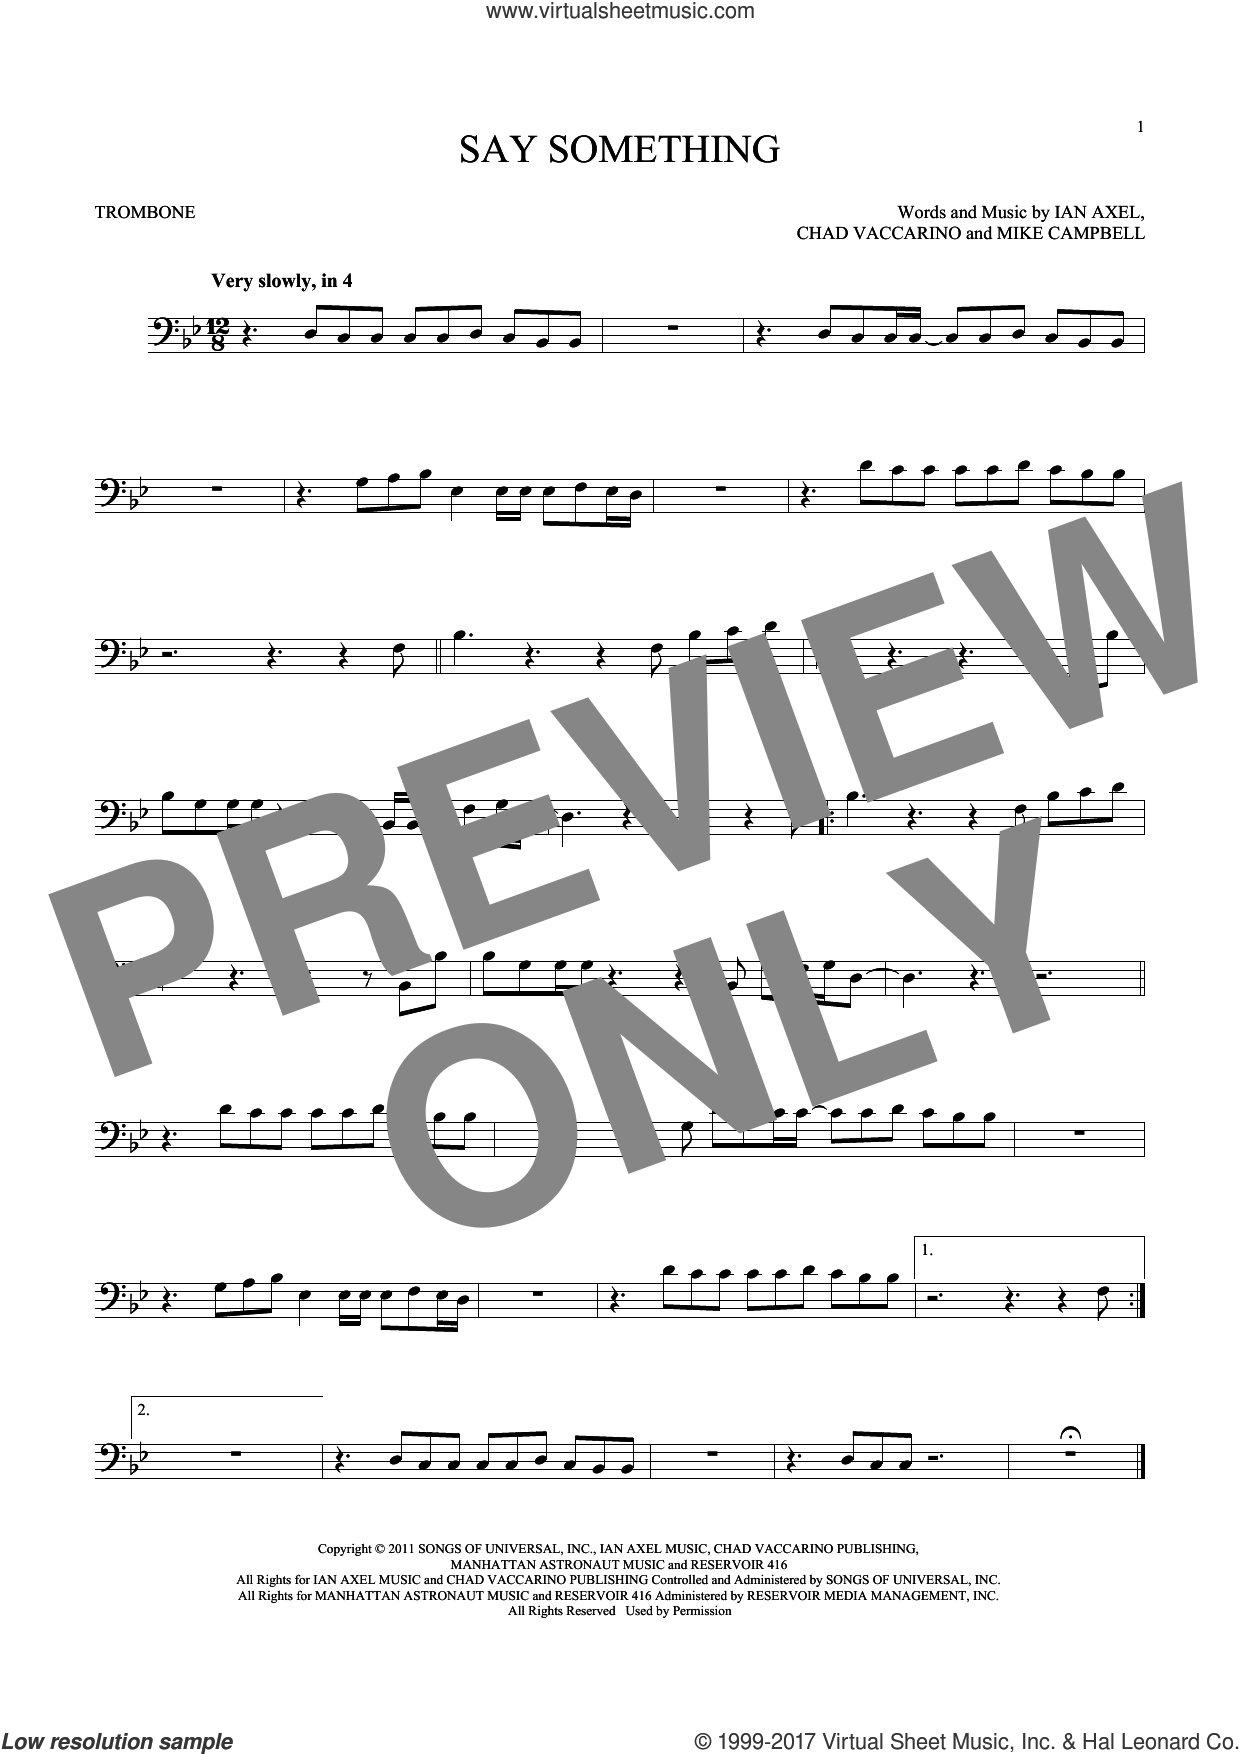 Say Something sheet music for trombone solo by A Great Big World, Chad Vaccarino, Ian Axel and Mike Campbell, intermediate